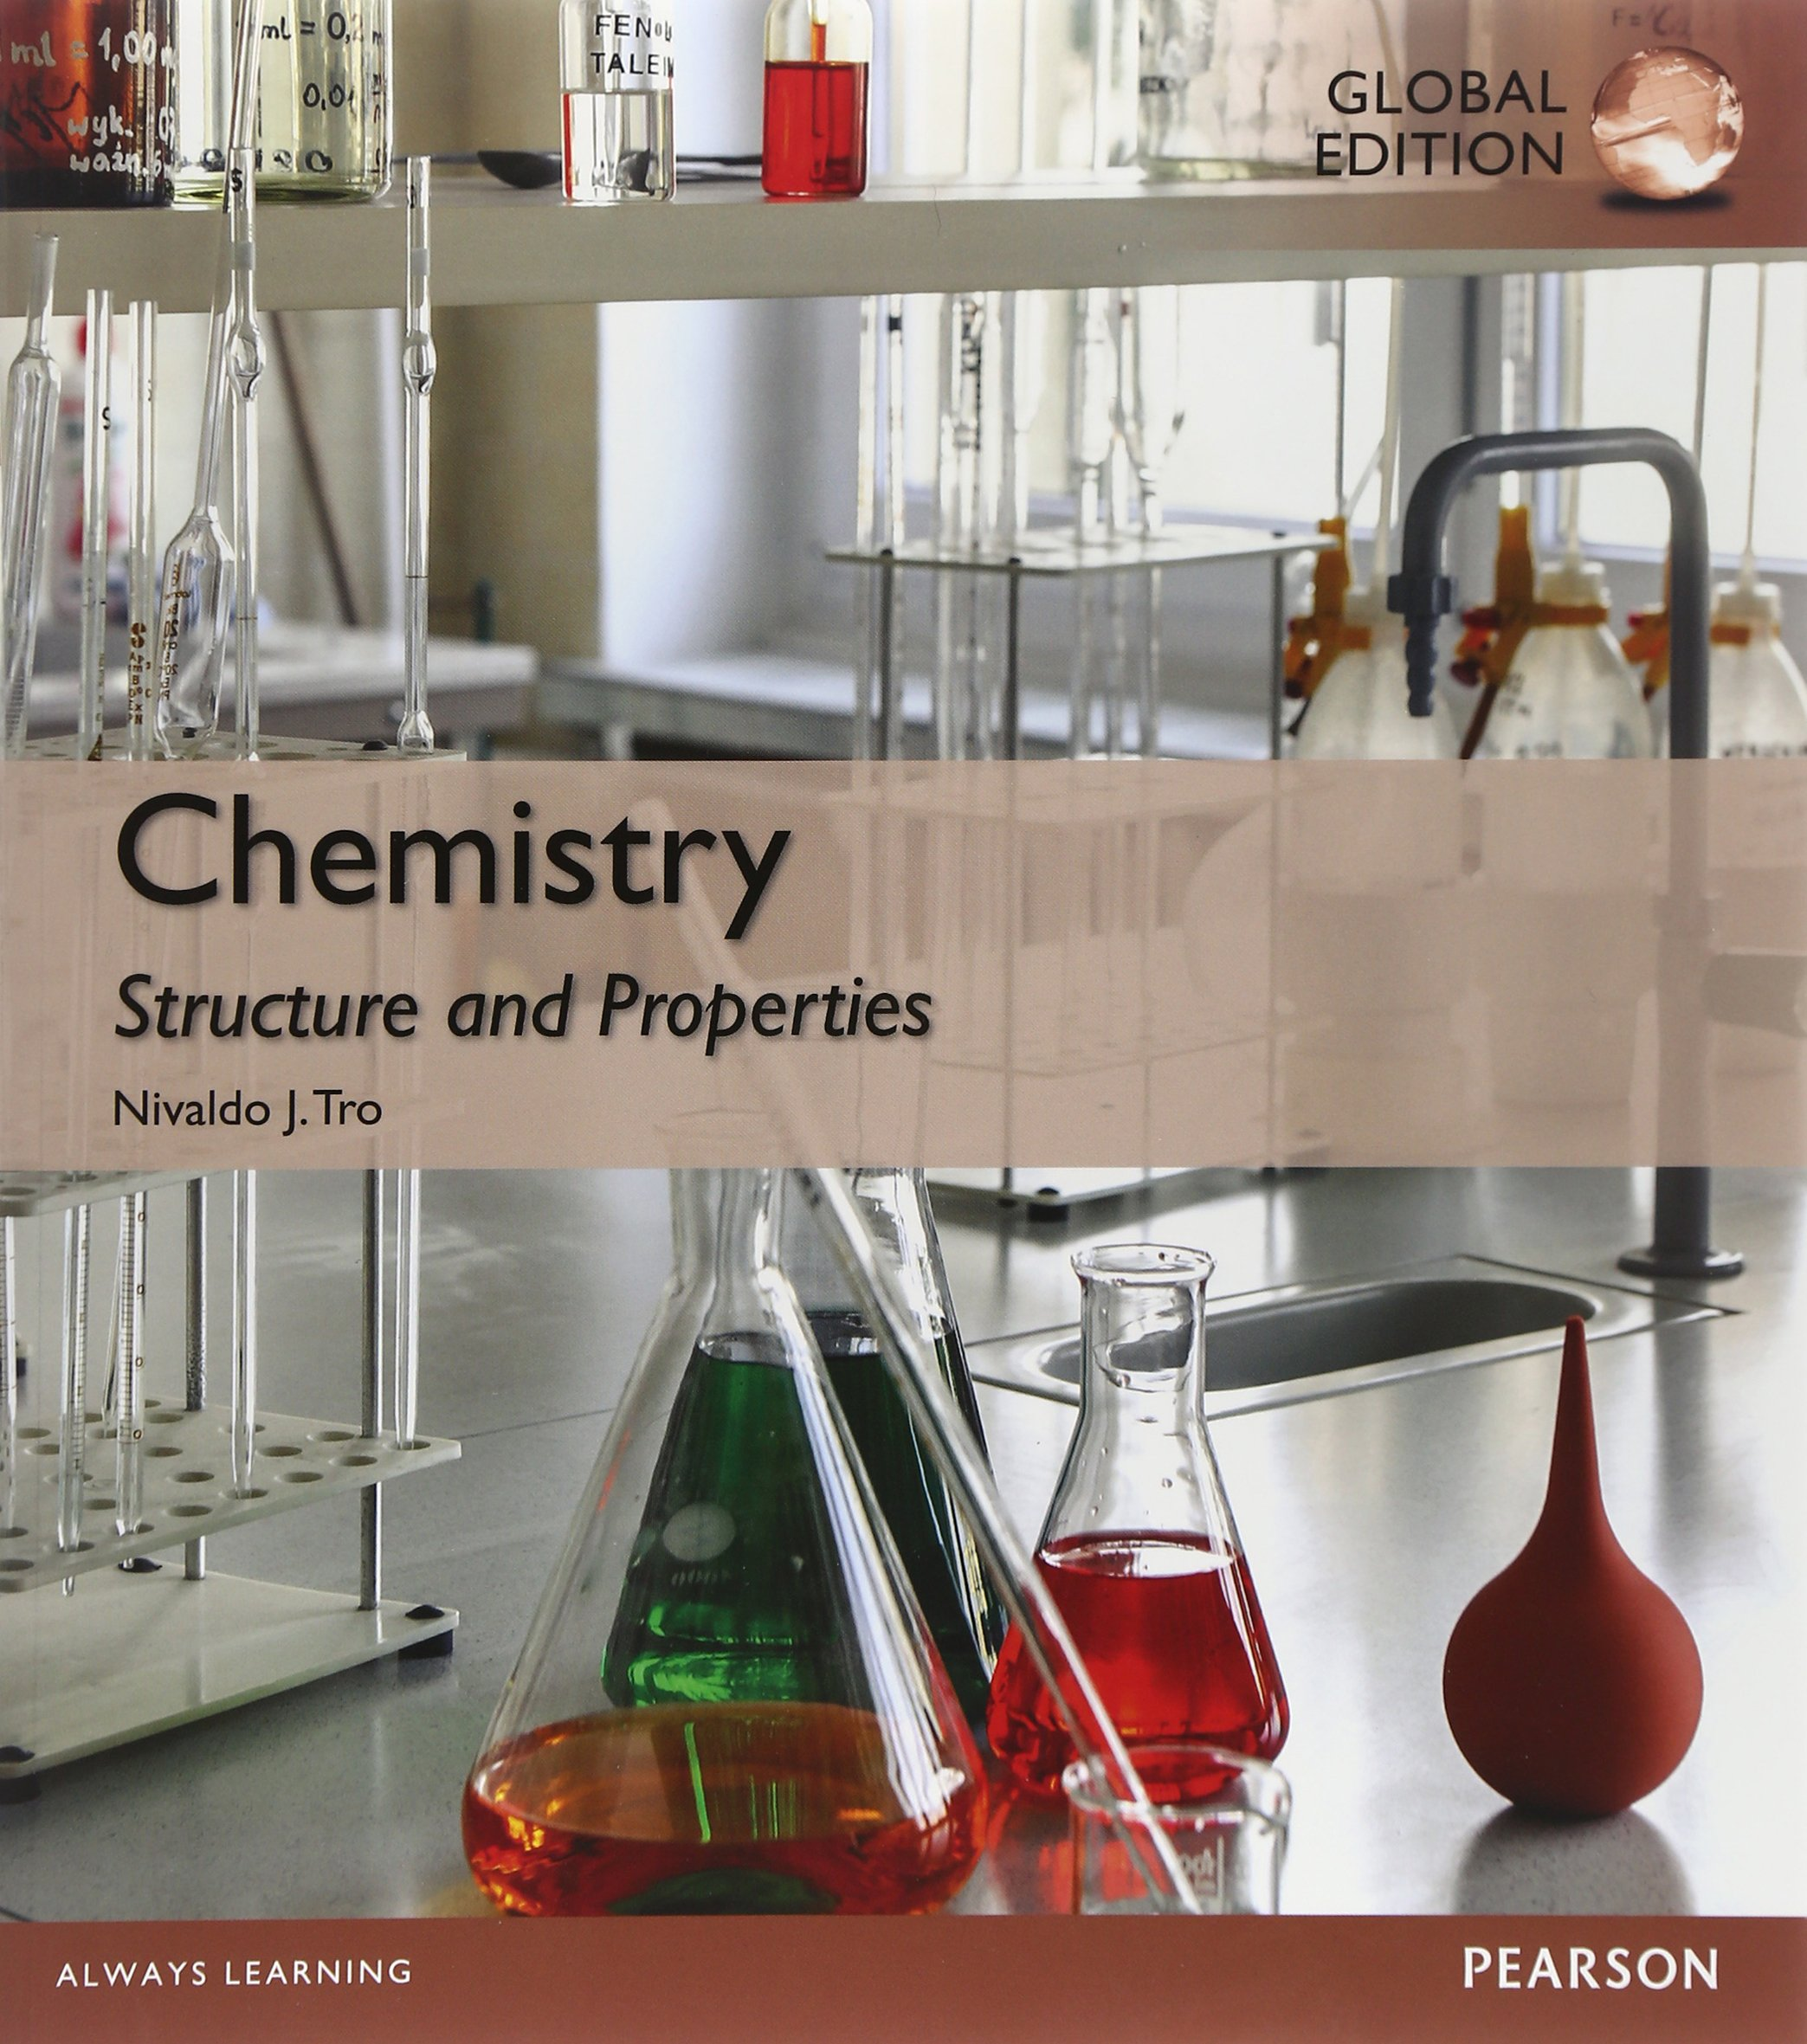 CHEMISTRY: STRUCTURE AND PROPERTIES (GLOBAL EDITION)